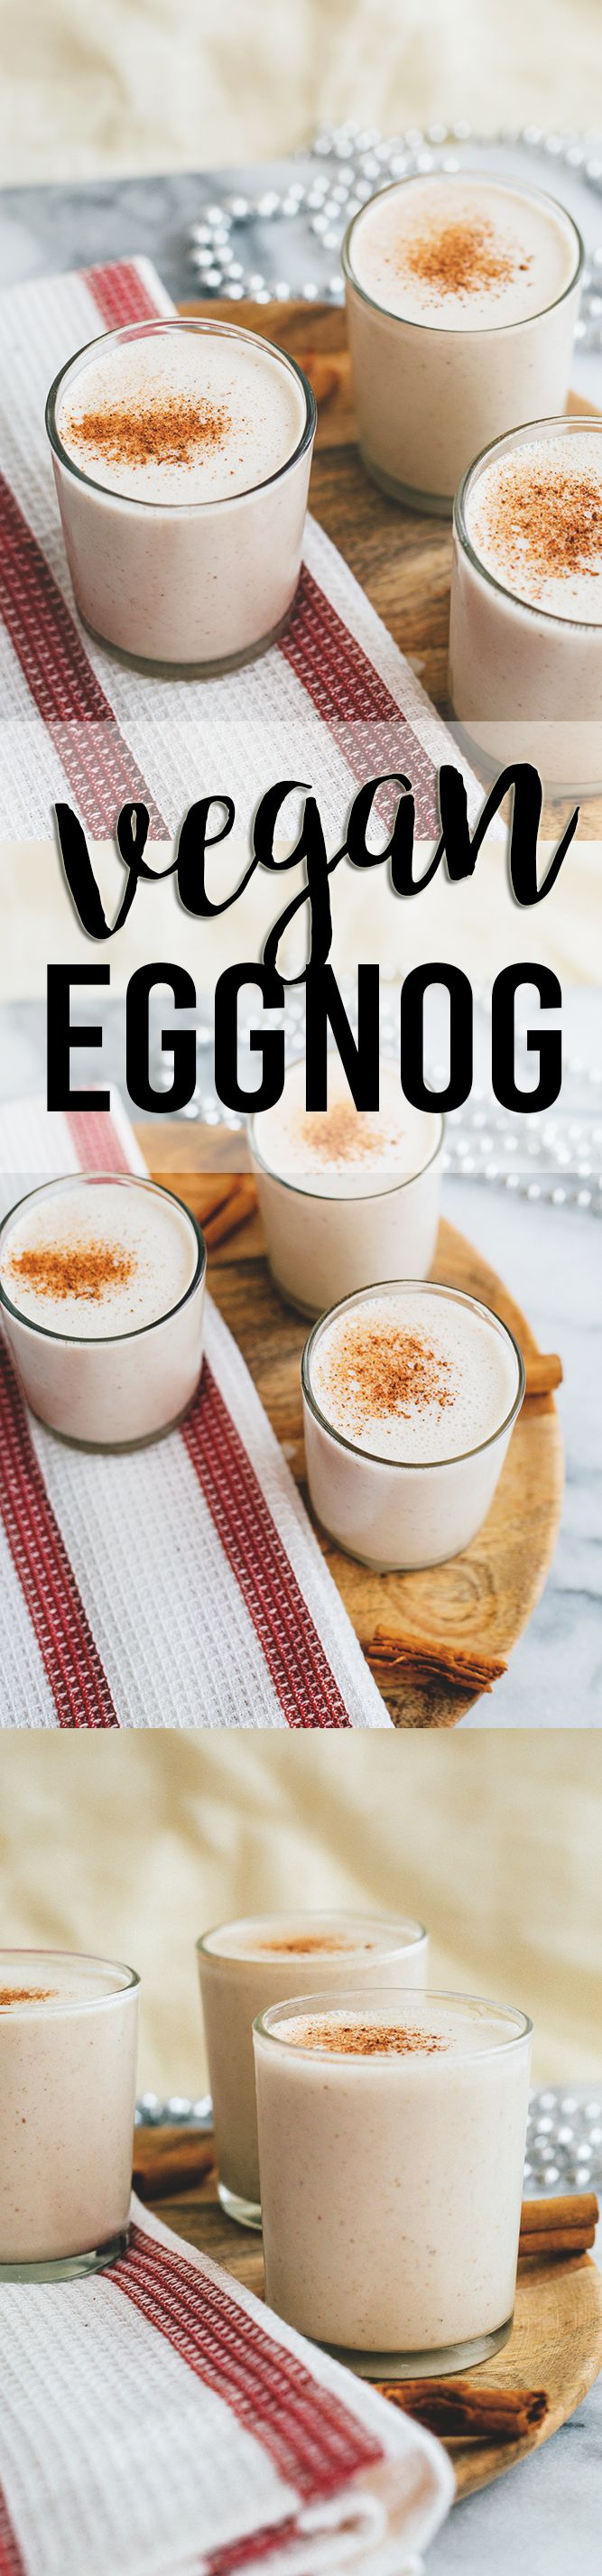 Eggnog, perfect for the Holidays!